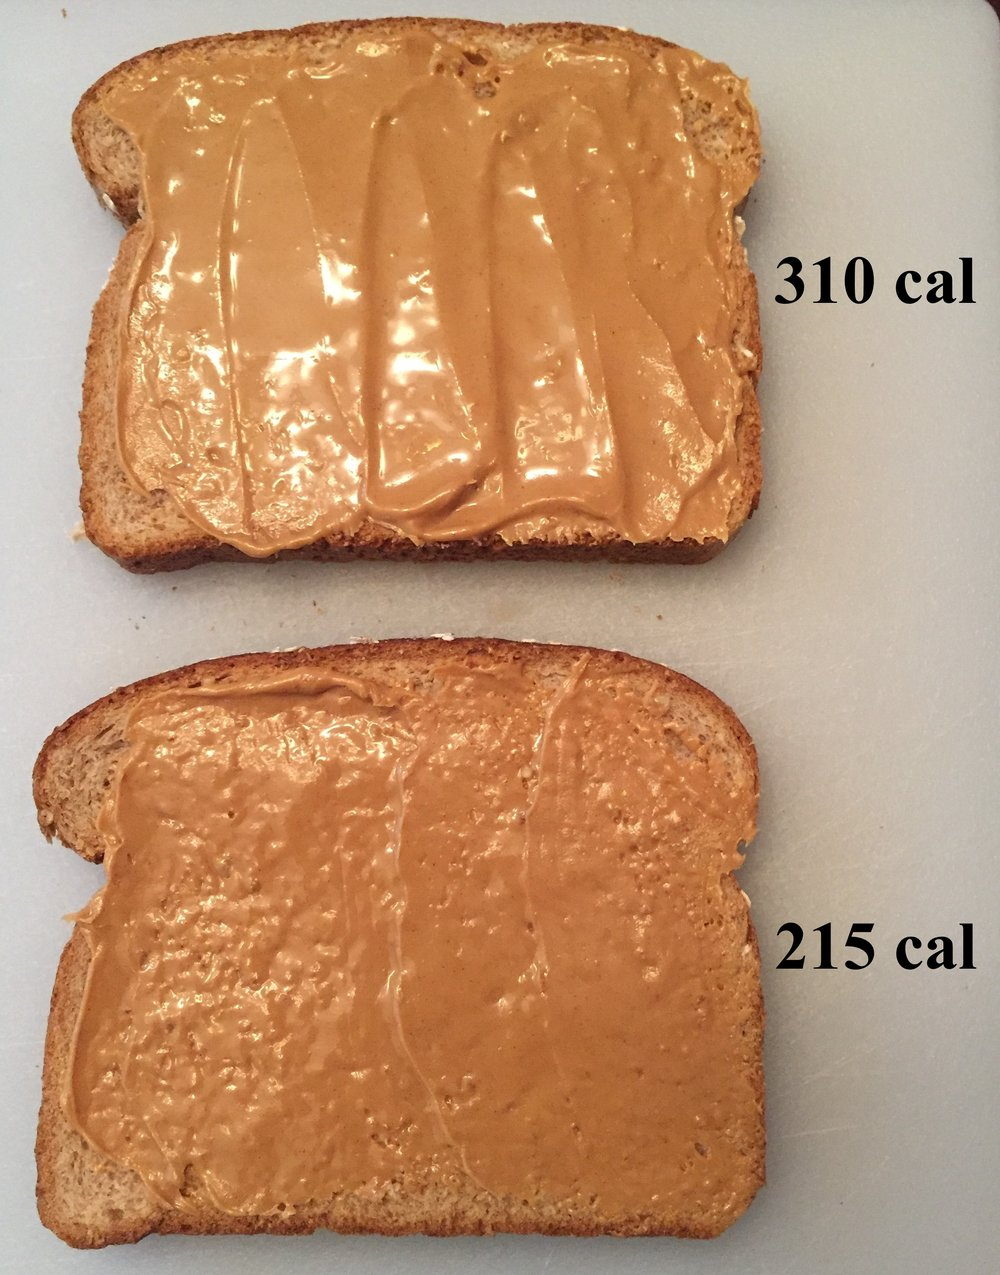 1 serving vs. 1/2 serving of peanut butter on a slice of bread.